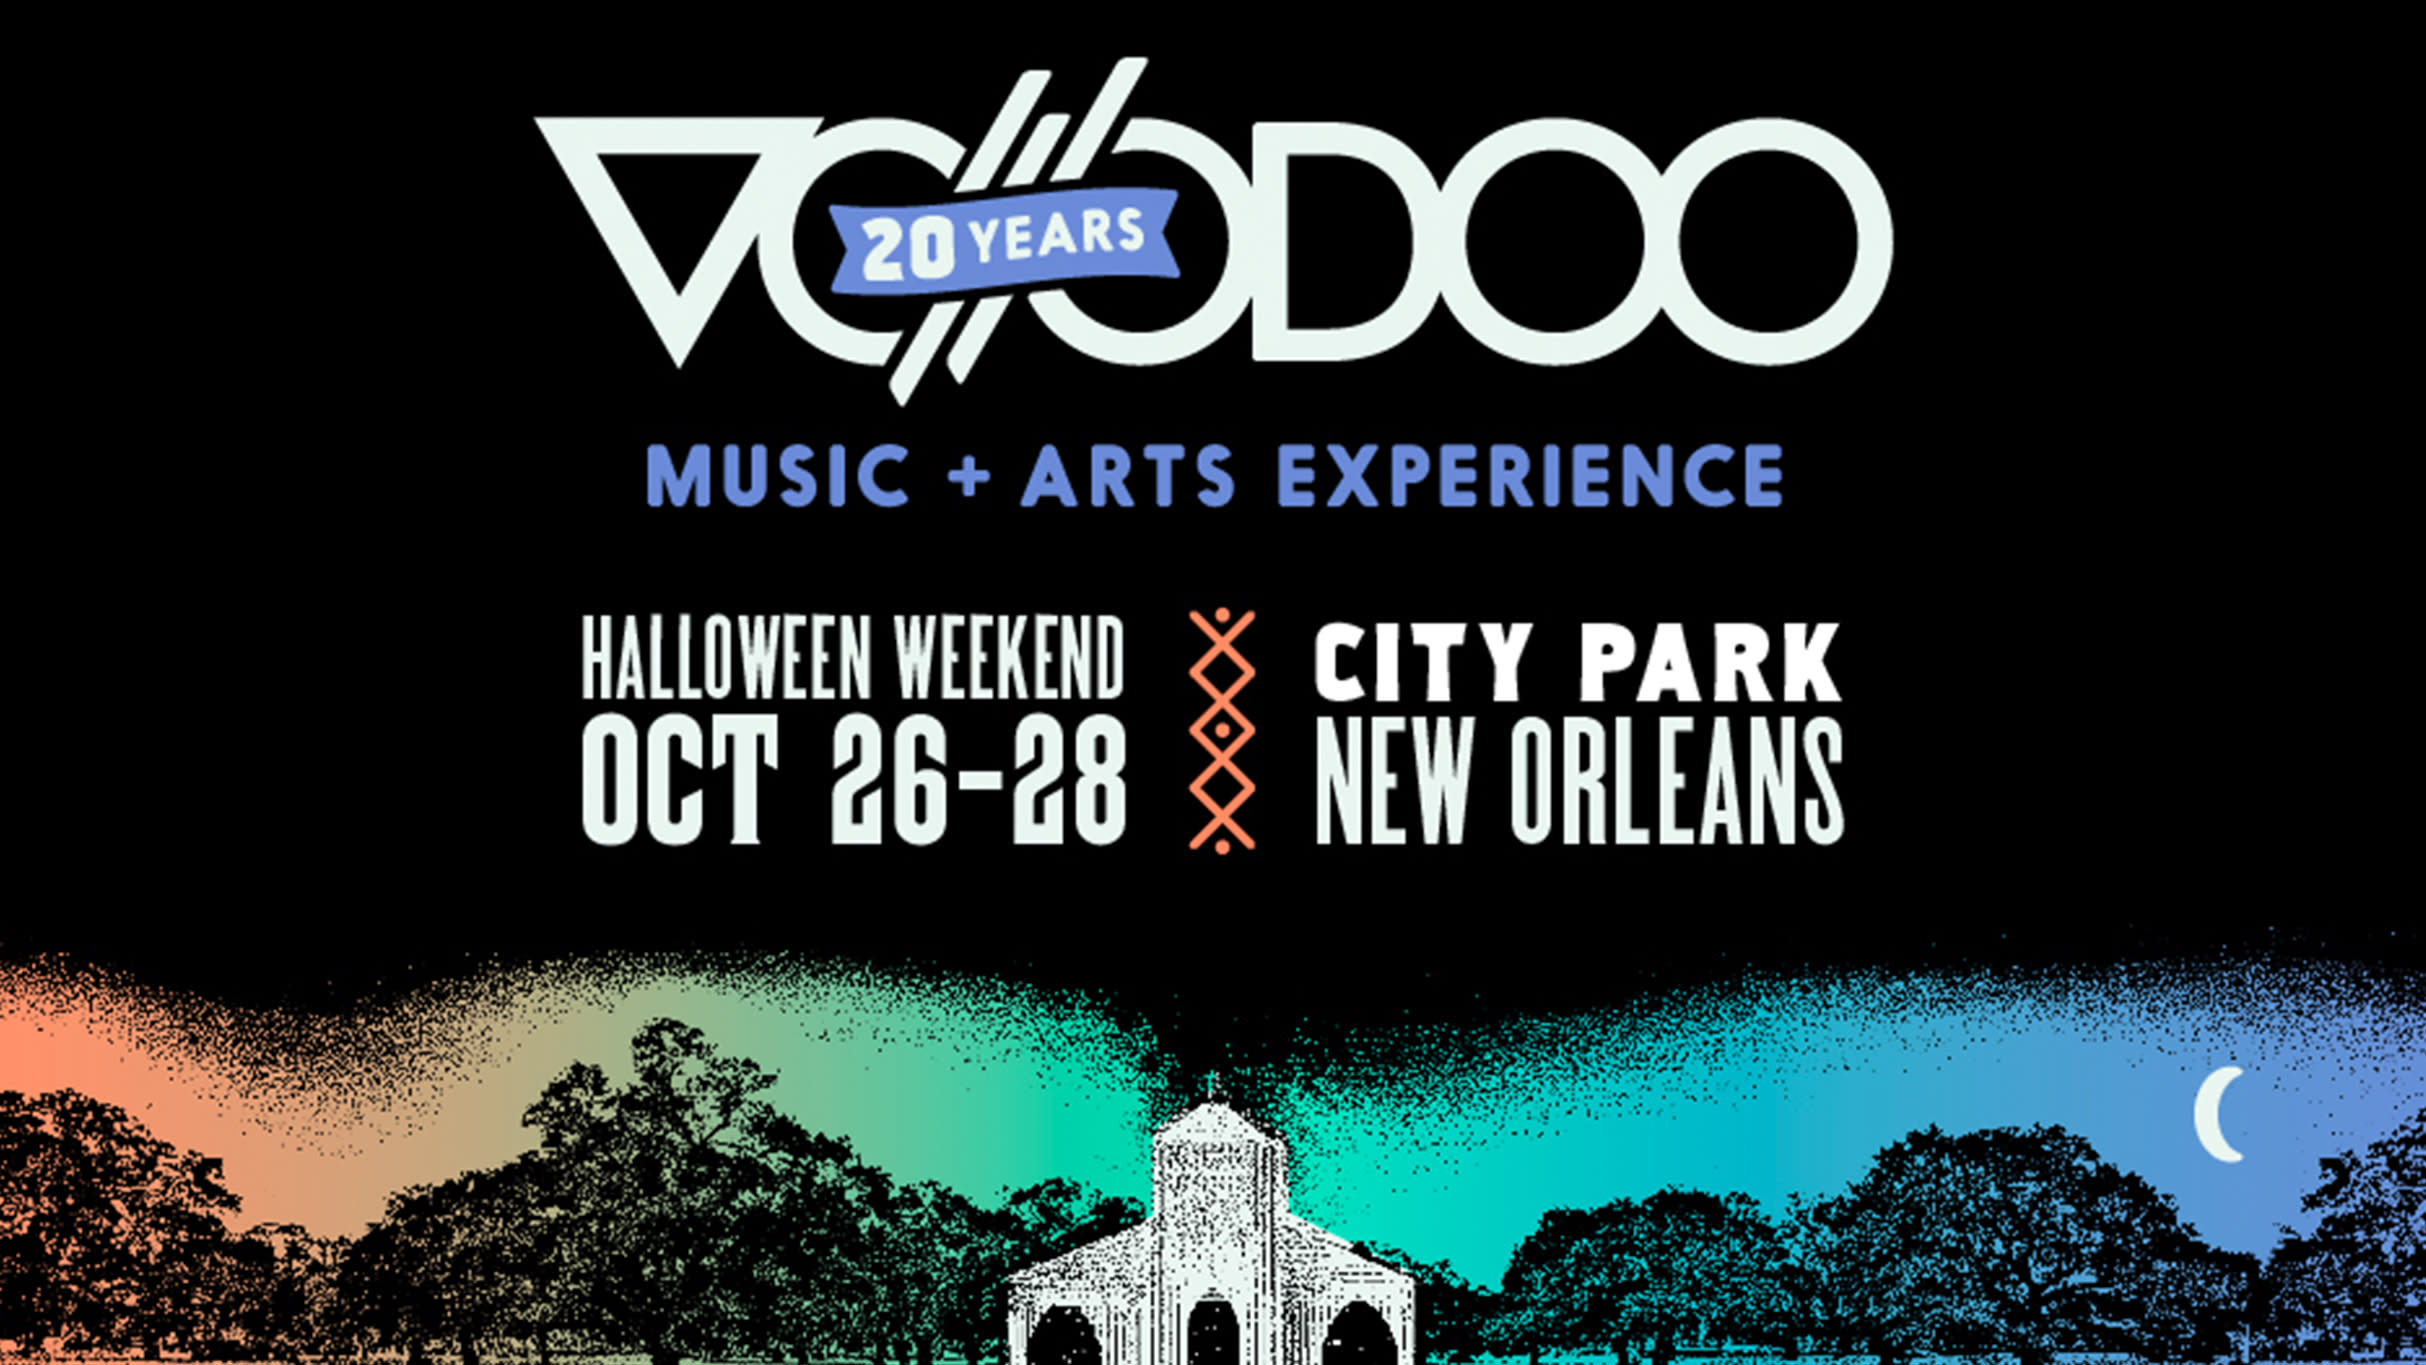 Thank you for streaming the Voodoo festival on Yahoo Entertainment!